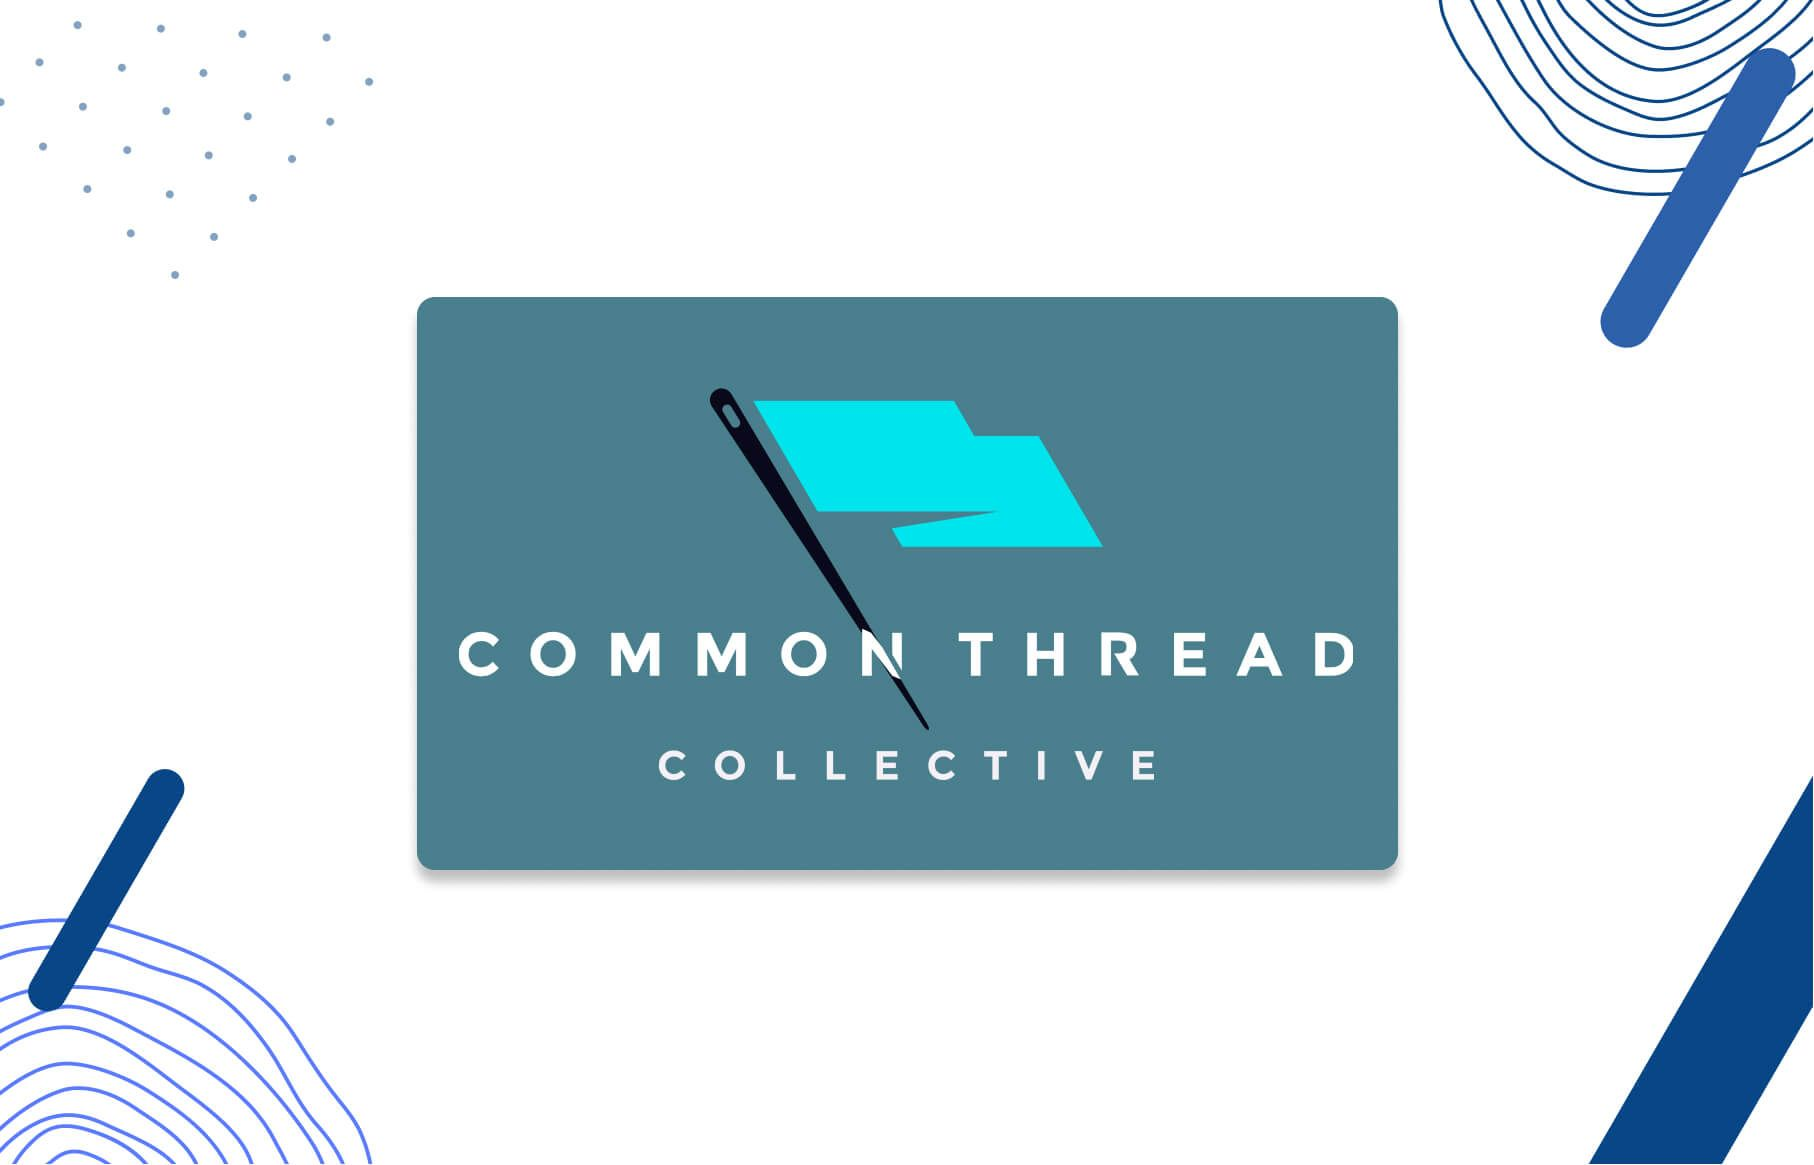 Common Thread Collective Logo - Your Ecommerce Growth Partner